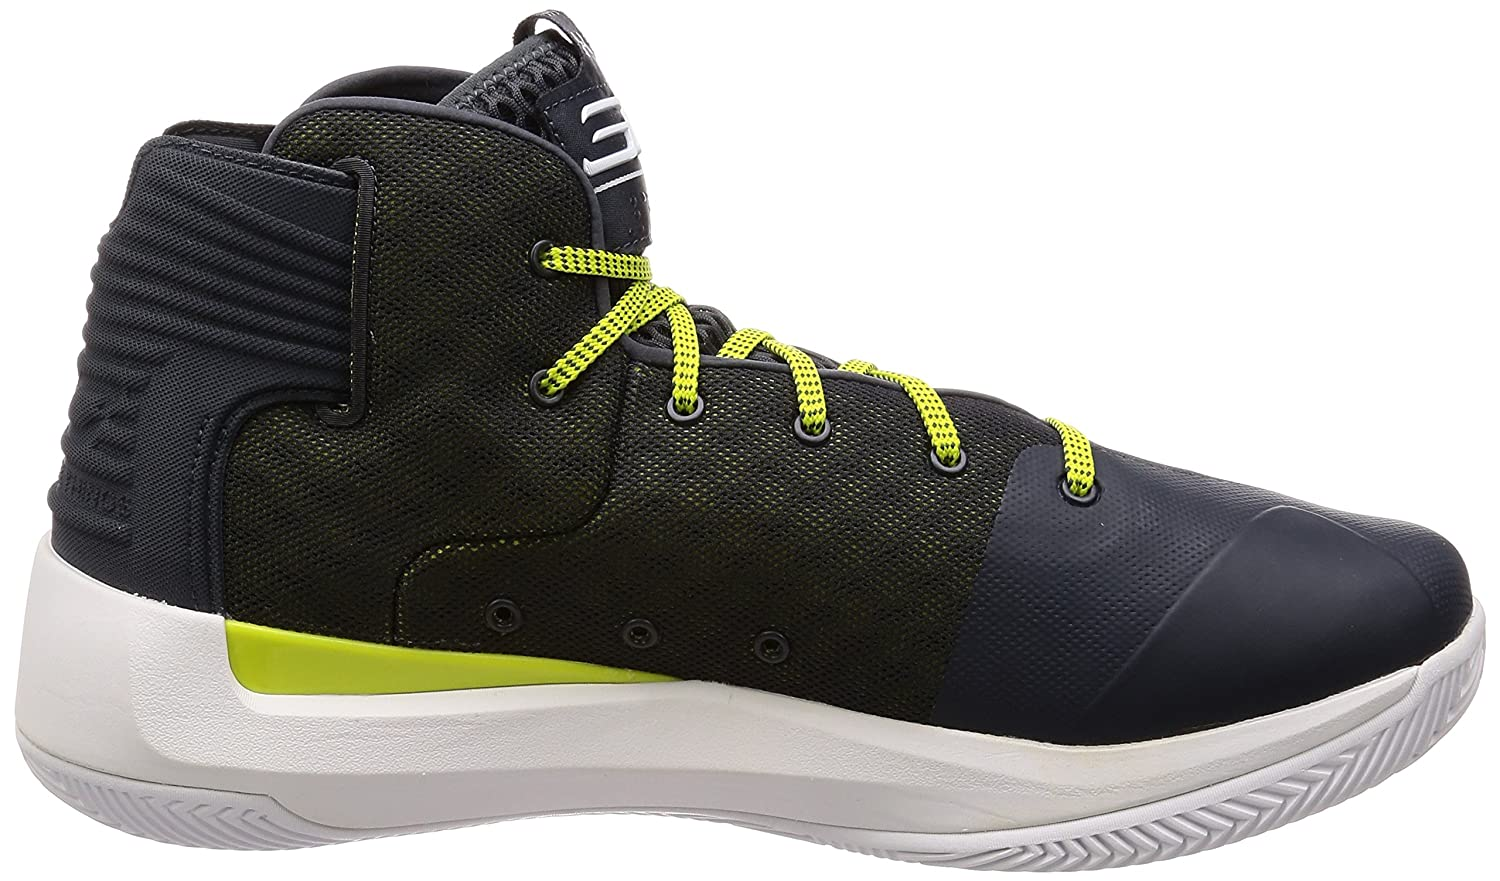 Under Armour Karri 3 Menns Basketball Sko Gjennomgang OCMidNDScy